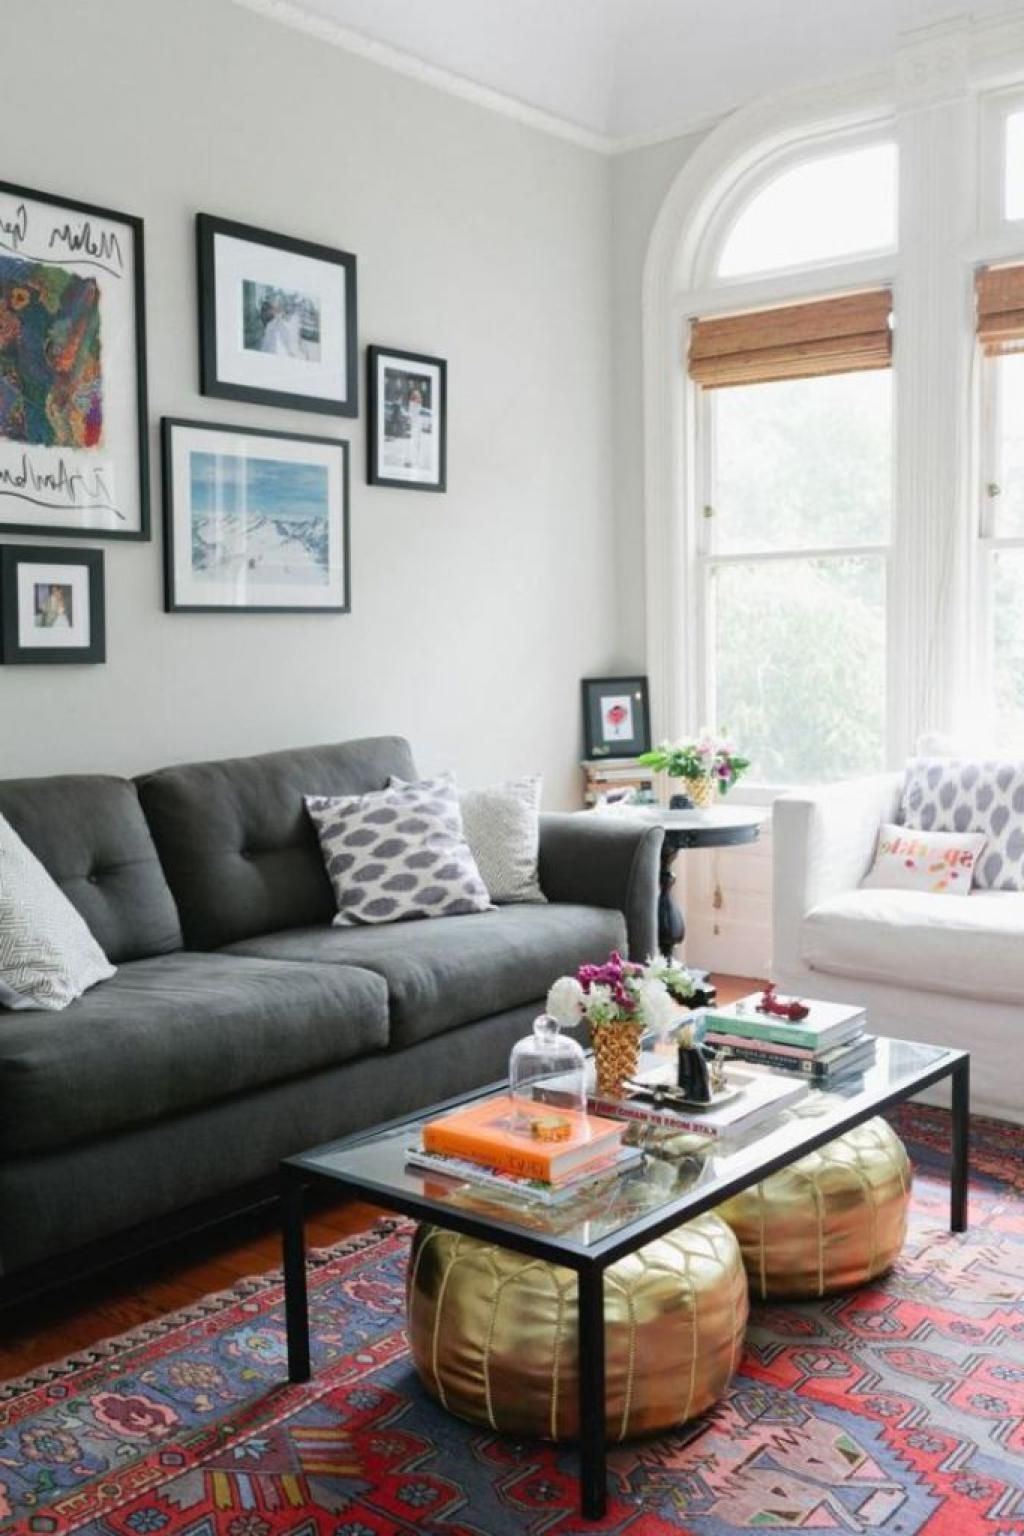 Living Room Cool Eclectic Living Room With Gray Sofa And Comfort Pillow Eclectic Living Room Design Living Room Decor Eclectic Eclectic Living Room Furniture